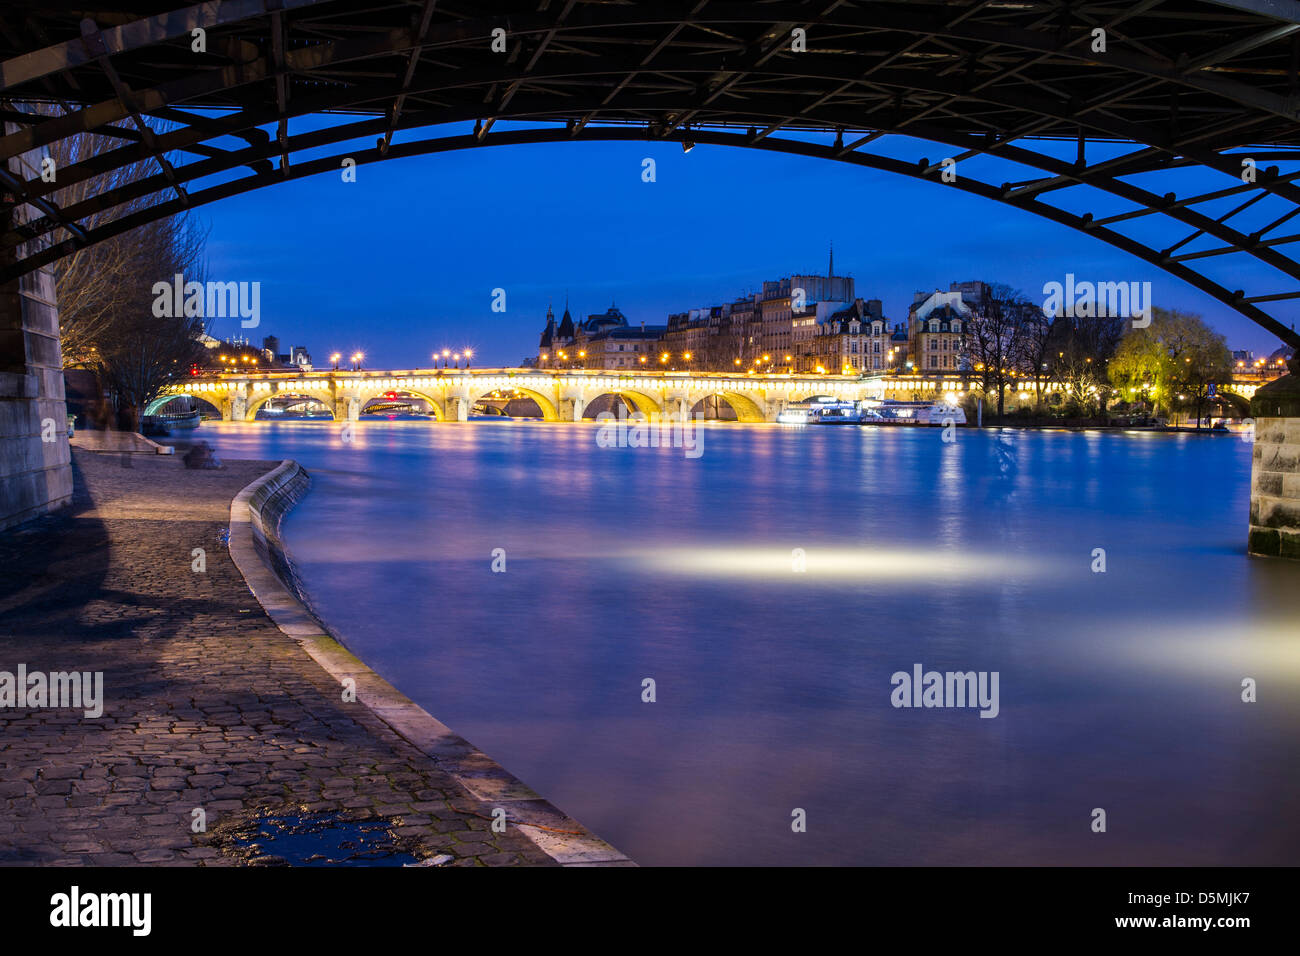 Pont Neuf viewed from below the arches of Pont des Arts. - Stock Image